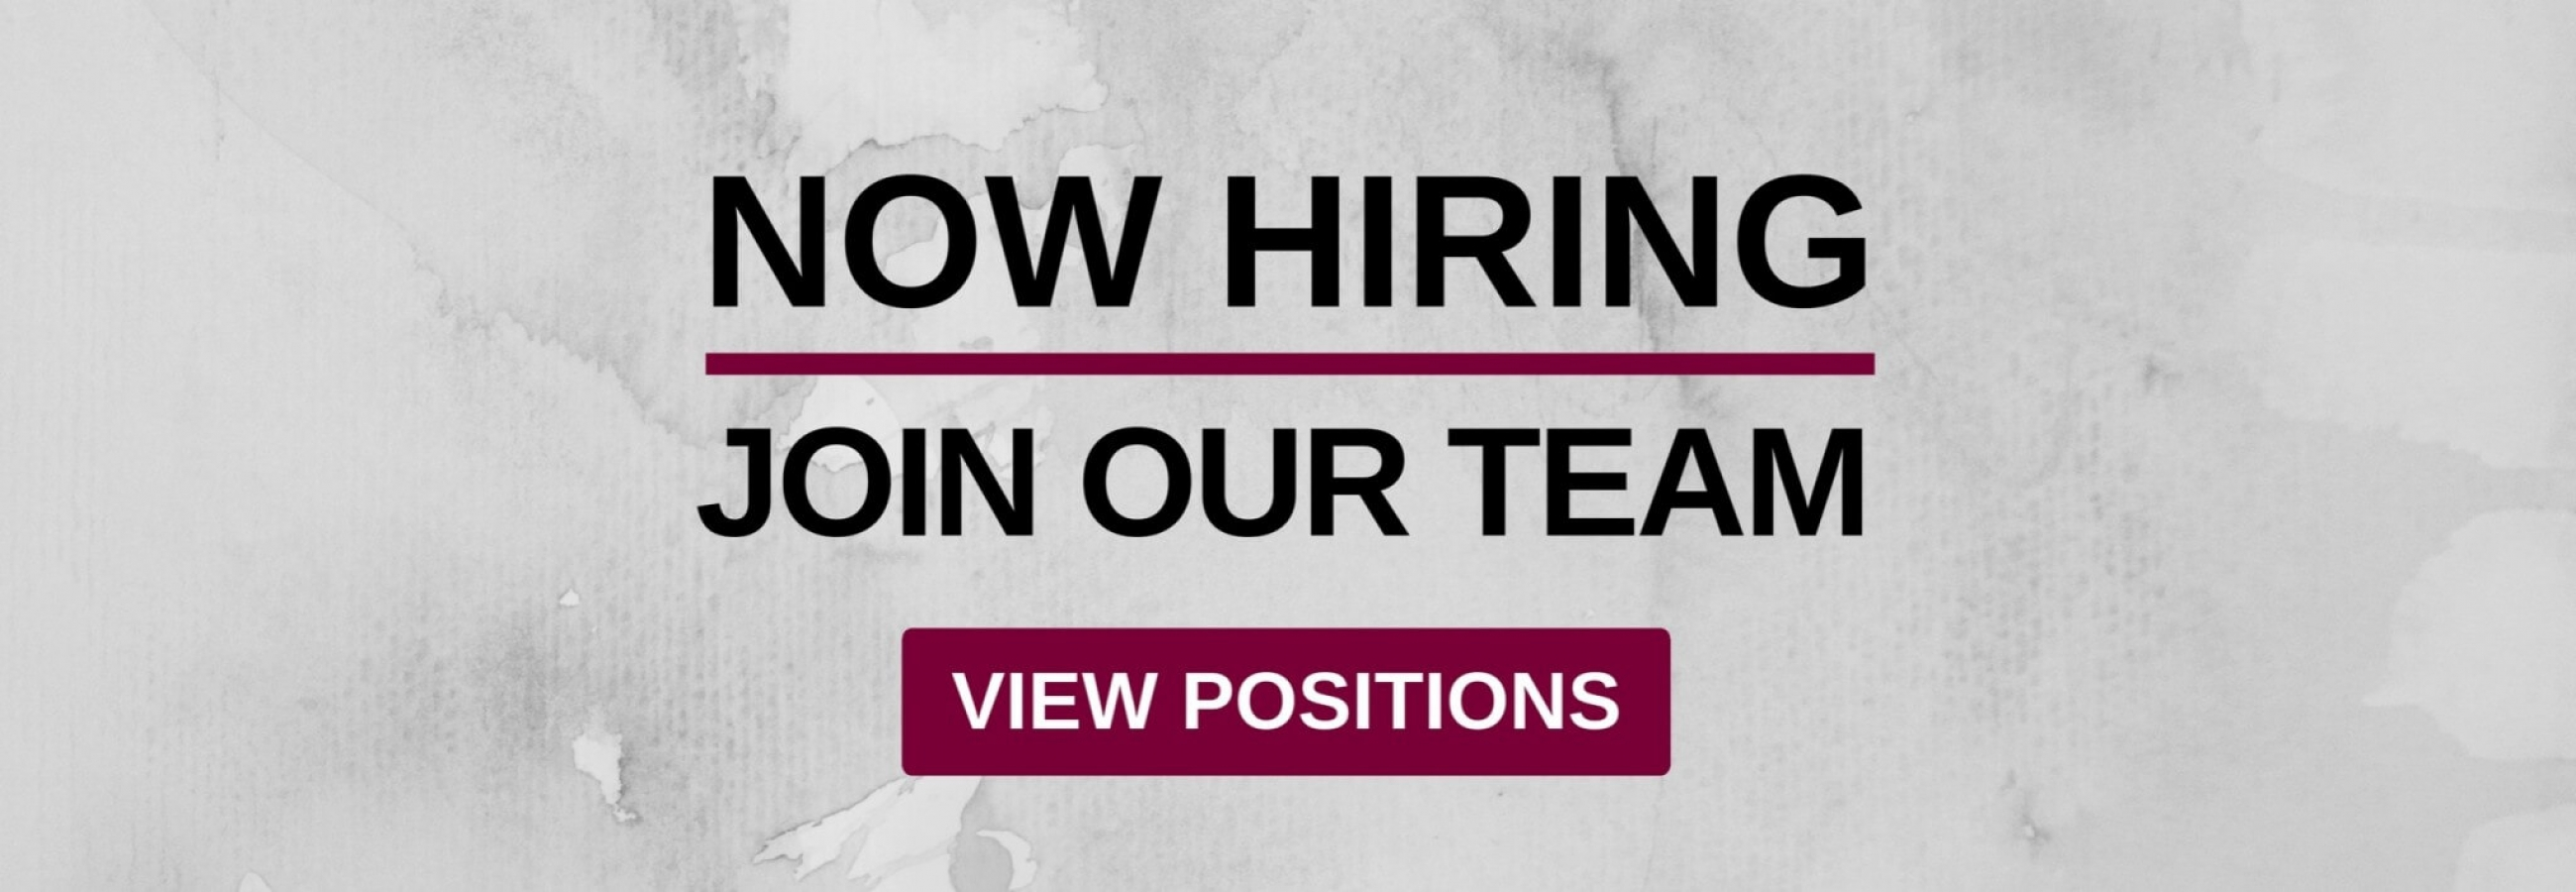 NOW HIRING VIEW POSITIONS